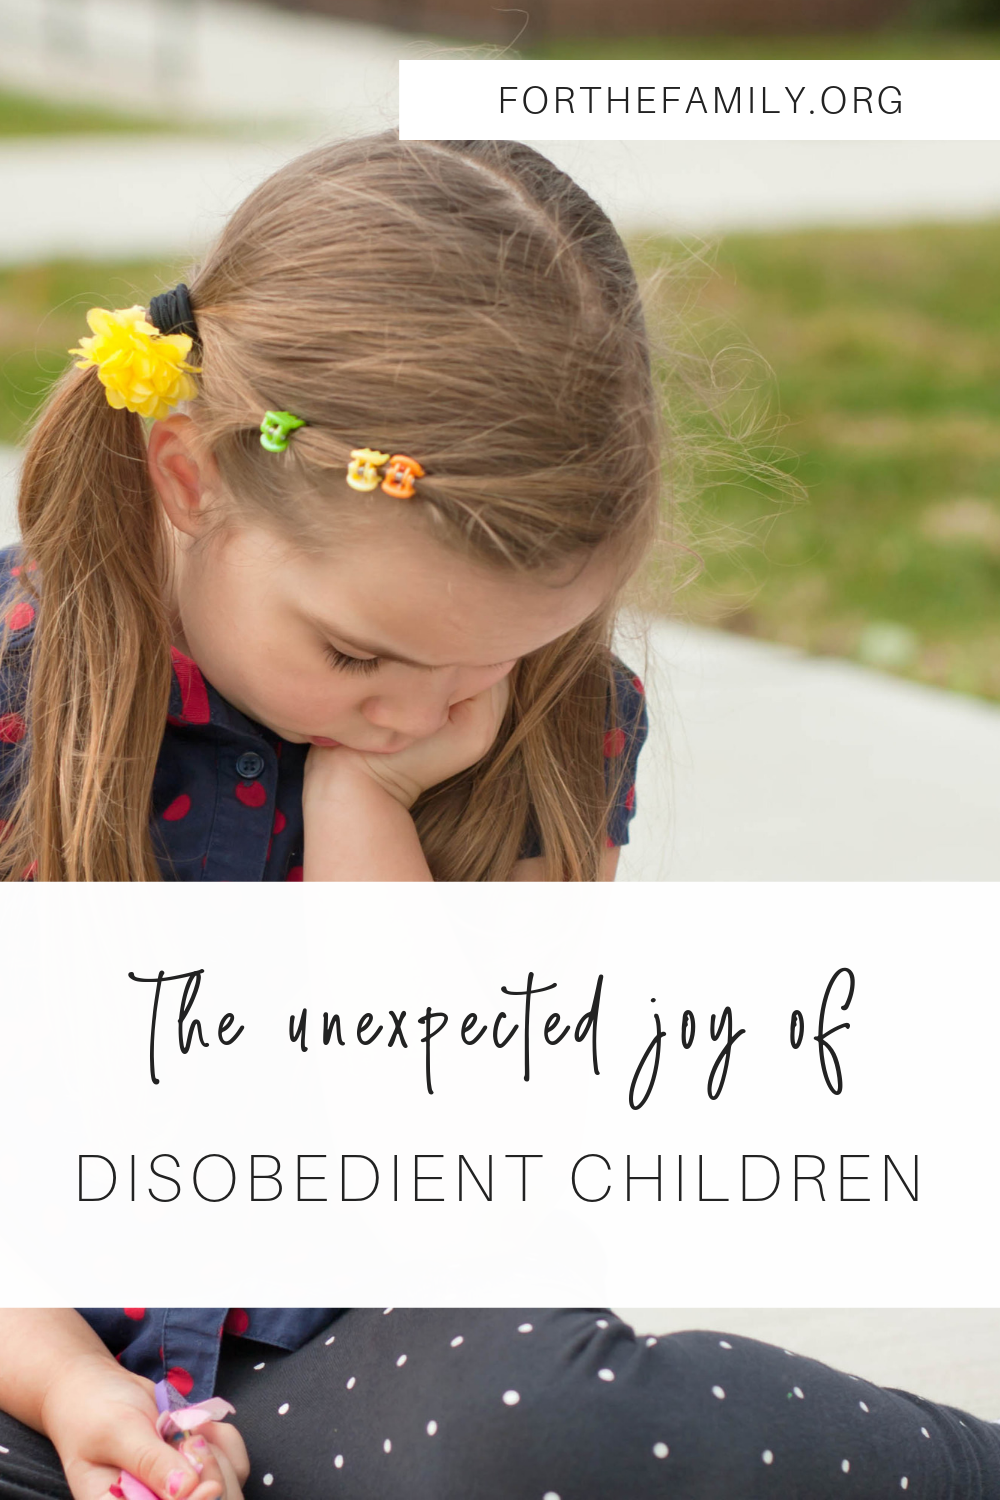 How do you respond to your children in imperfect moments? We have the opportunity to cultivate homes of connection in chaos instead of seeking a perfect performance. And the result is actually gospel love!